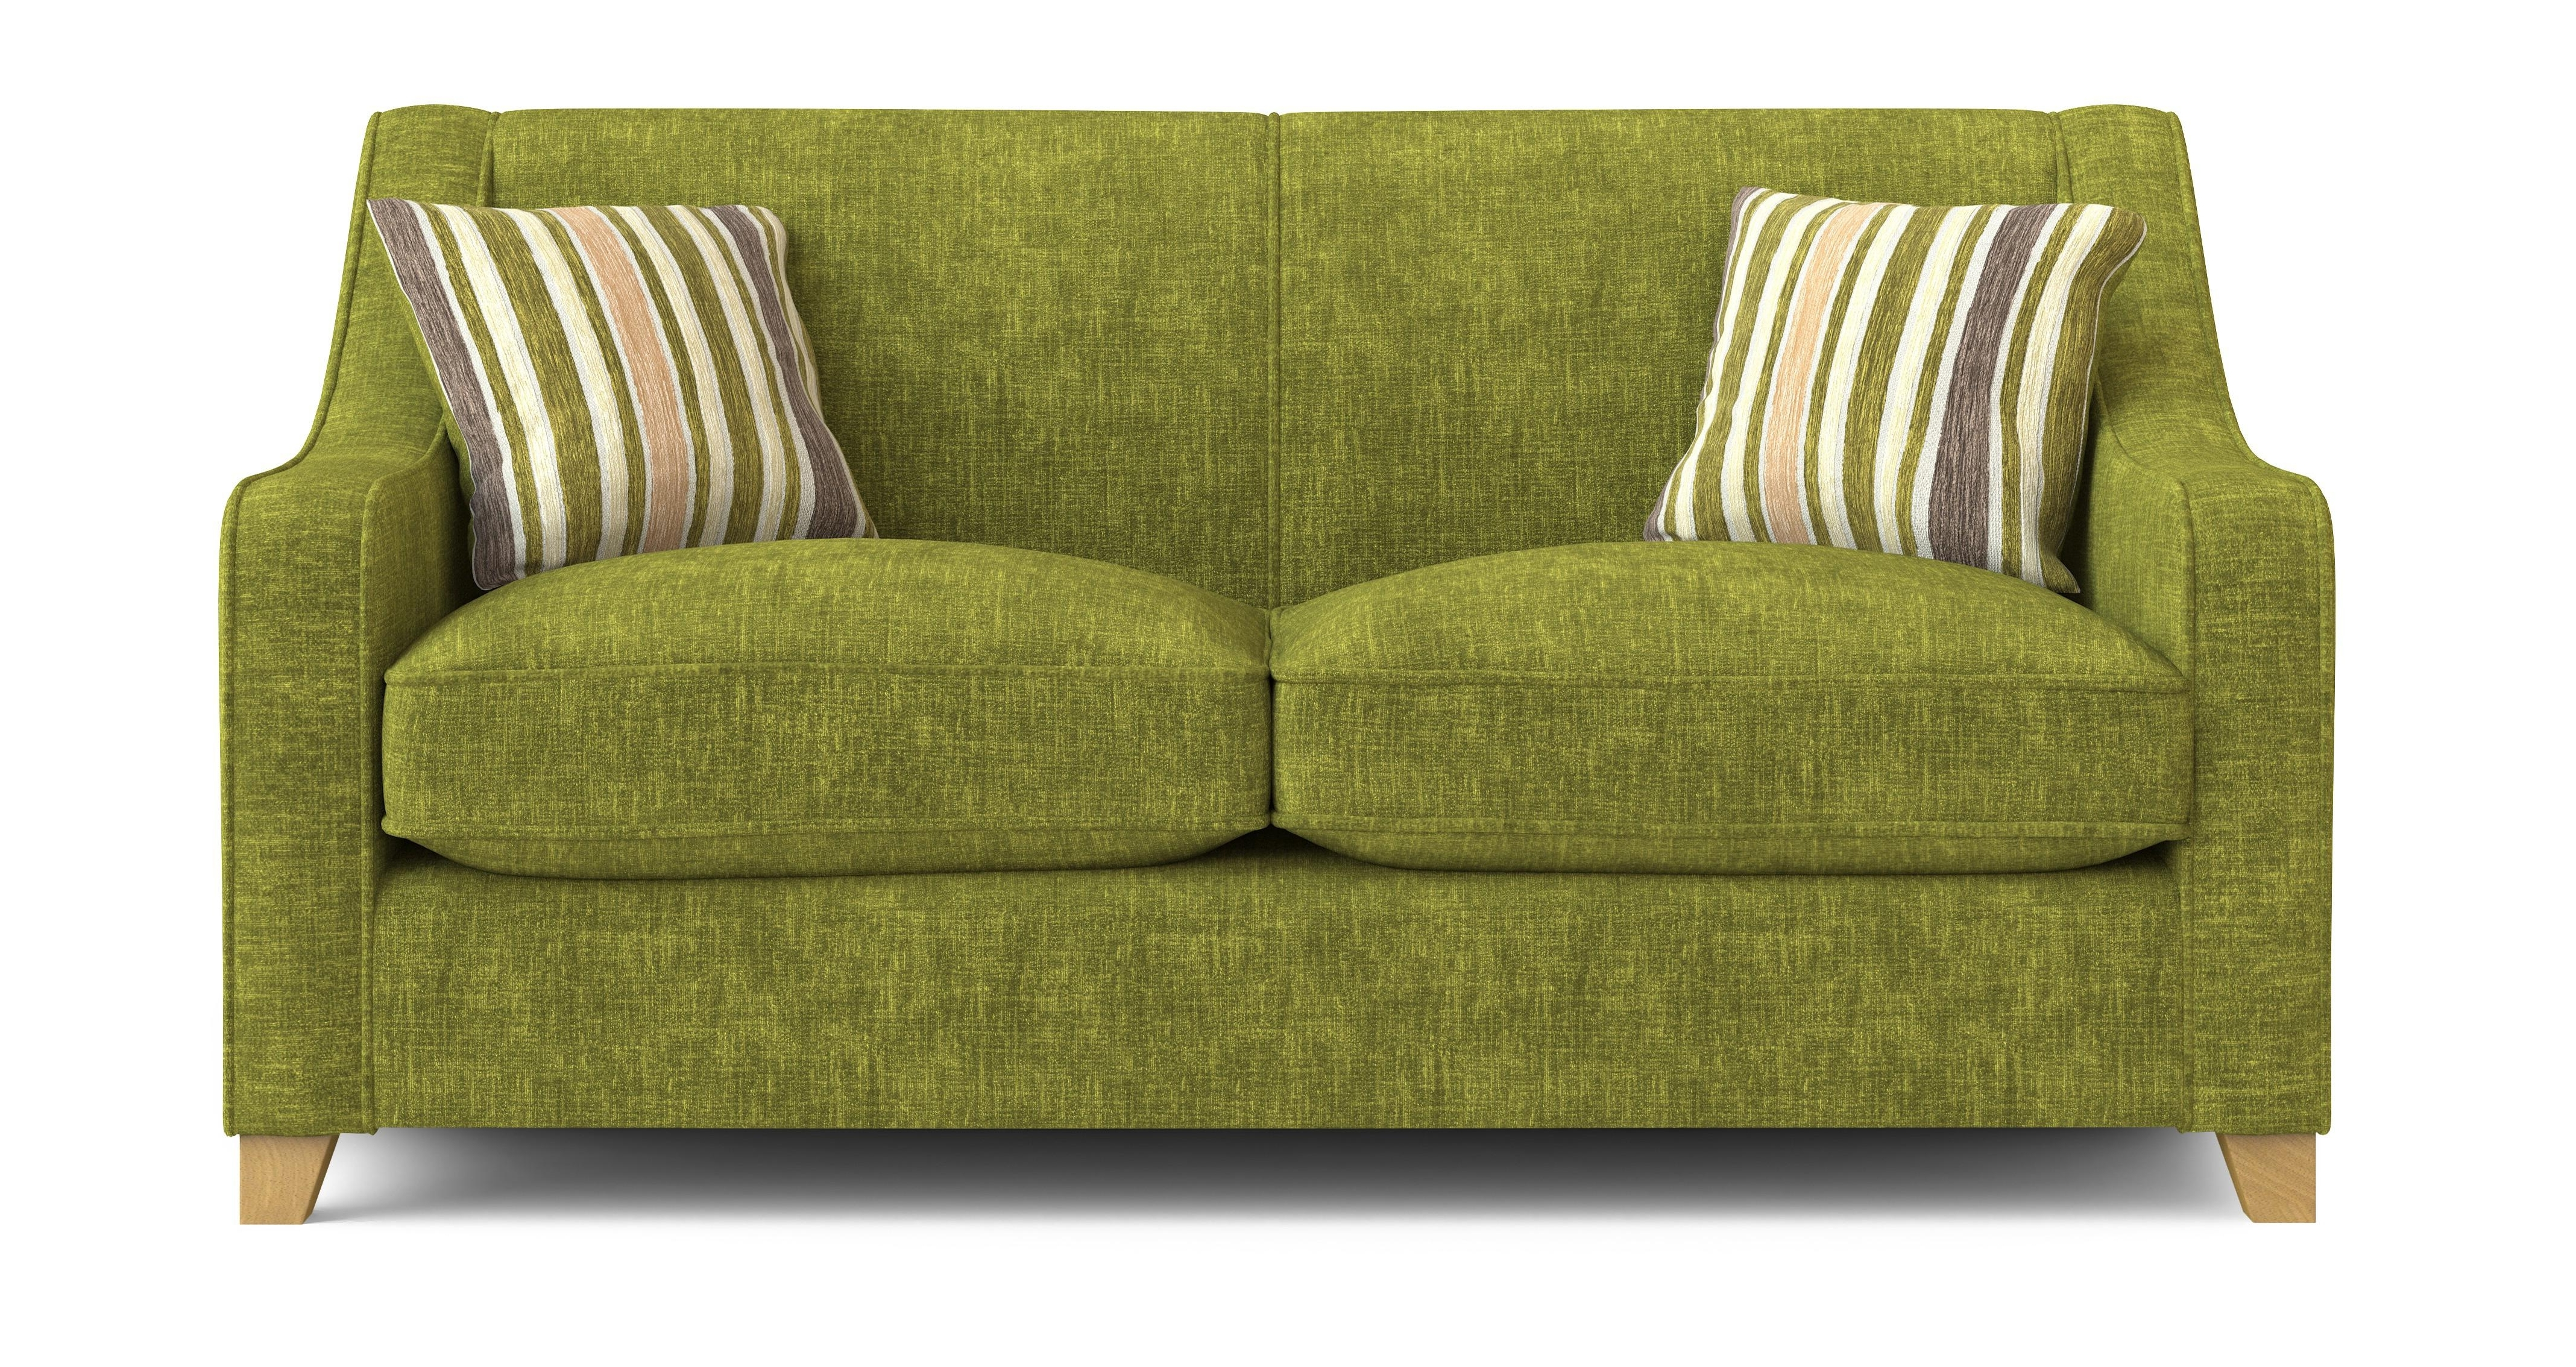 Epic Small 2 Seater Sofa 90 On Modern Sofa Ideas With Small 2 In Most Current Small 2 Seater Sofas (View 8 of 20)